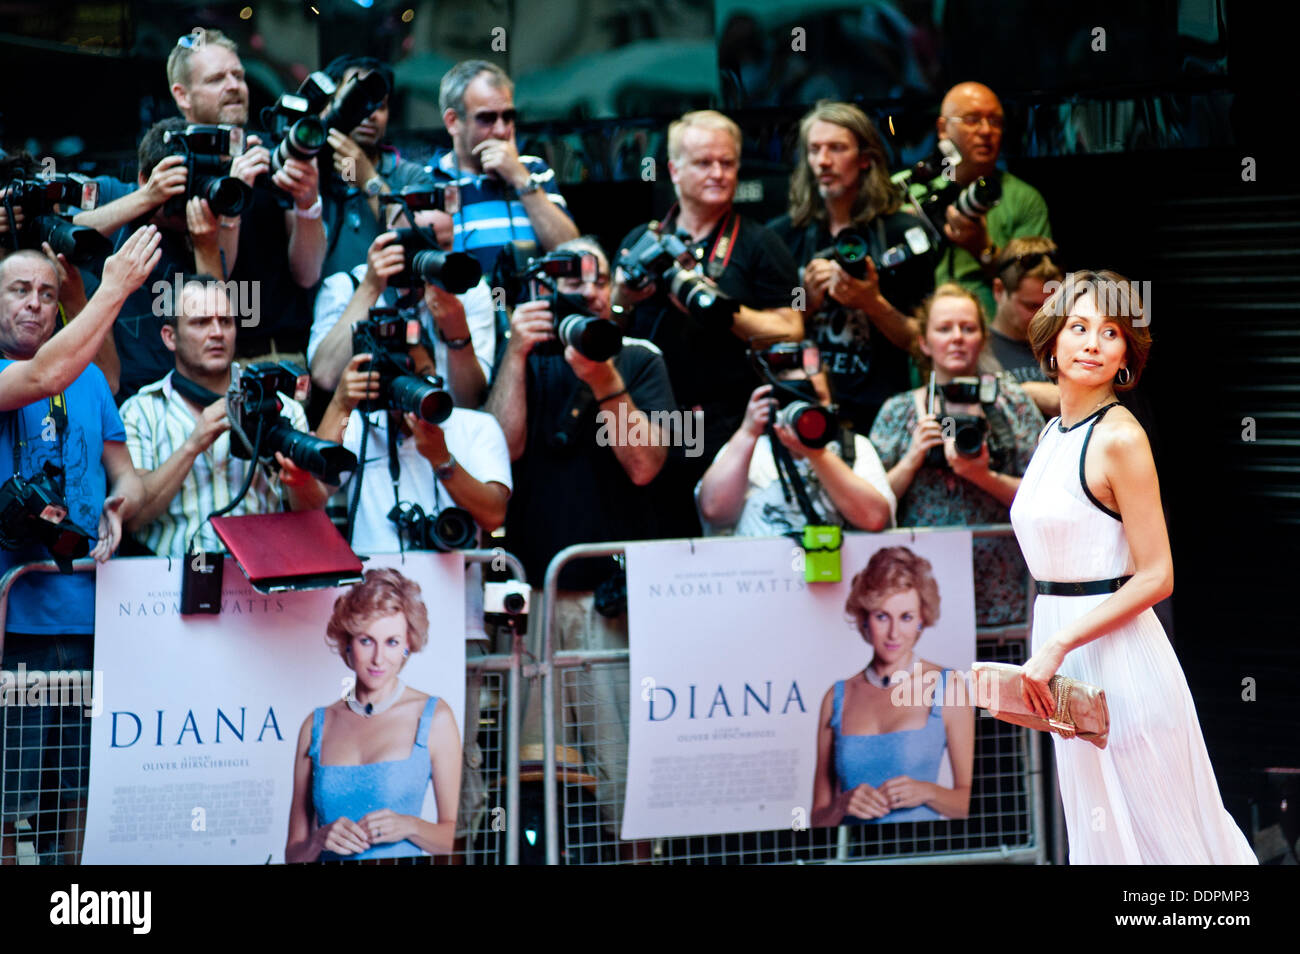 London, UK - 5 September 2013: Ryoko Yonekura (Japanese voice over for Diana) poses for pictures at the Diana world premiere at the Odeon Cinema in Leicester Square. Credit:  Piero Cruciatti/Alamy Live News - Stock Image